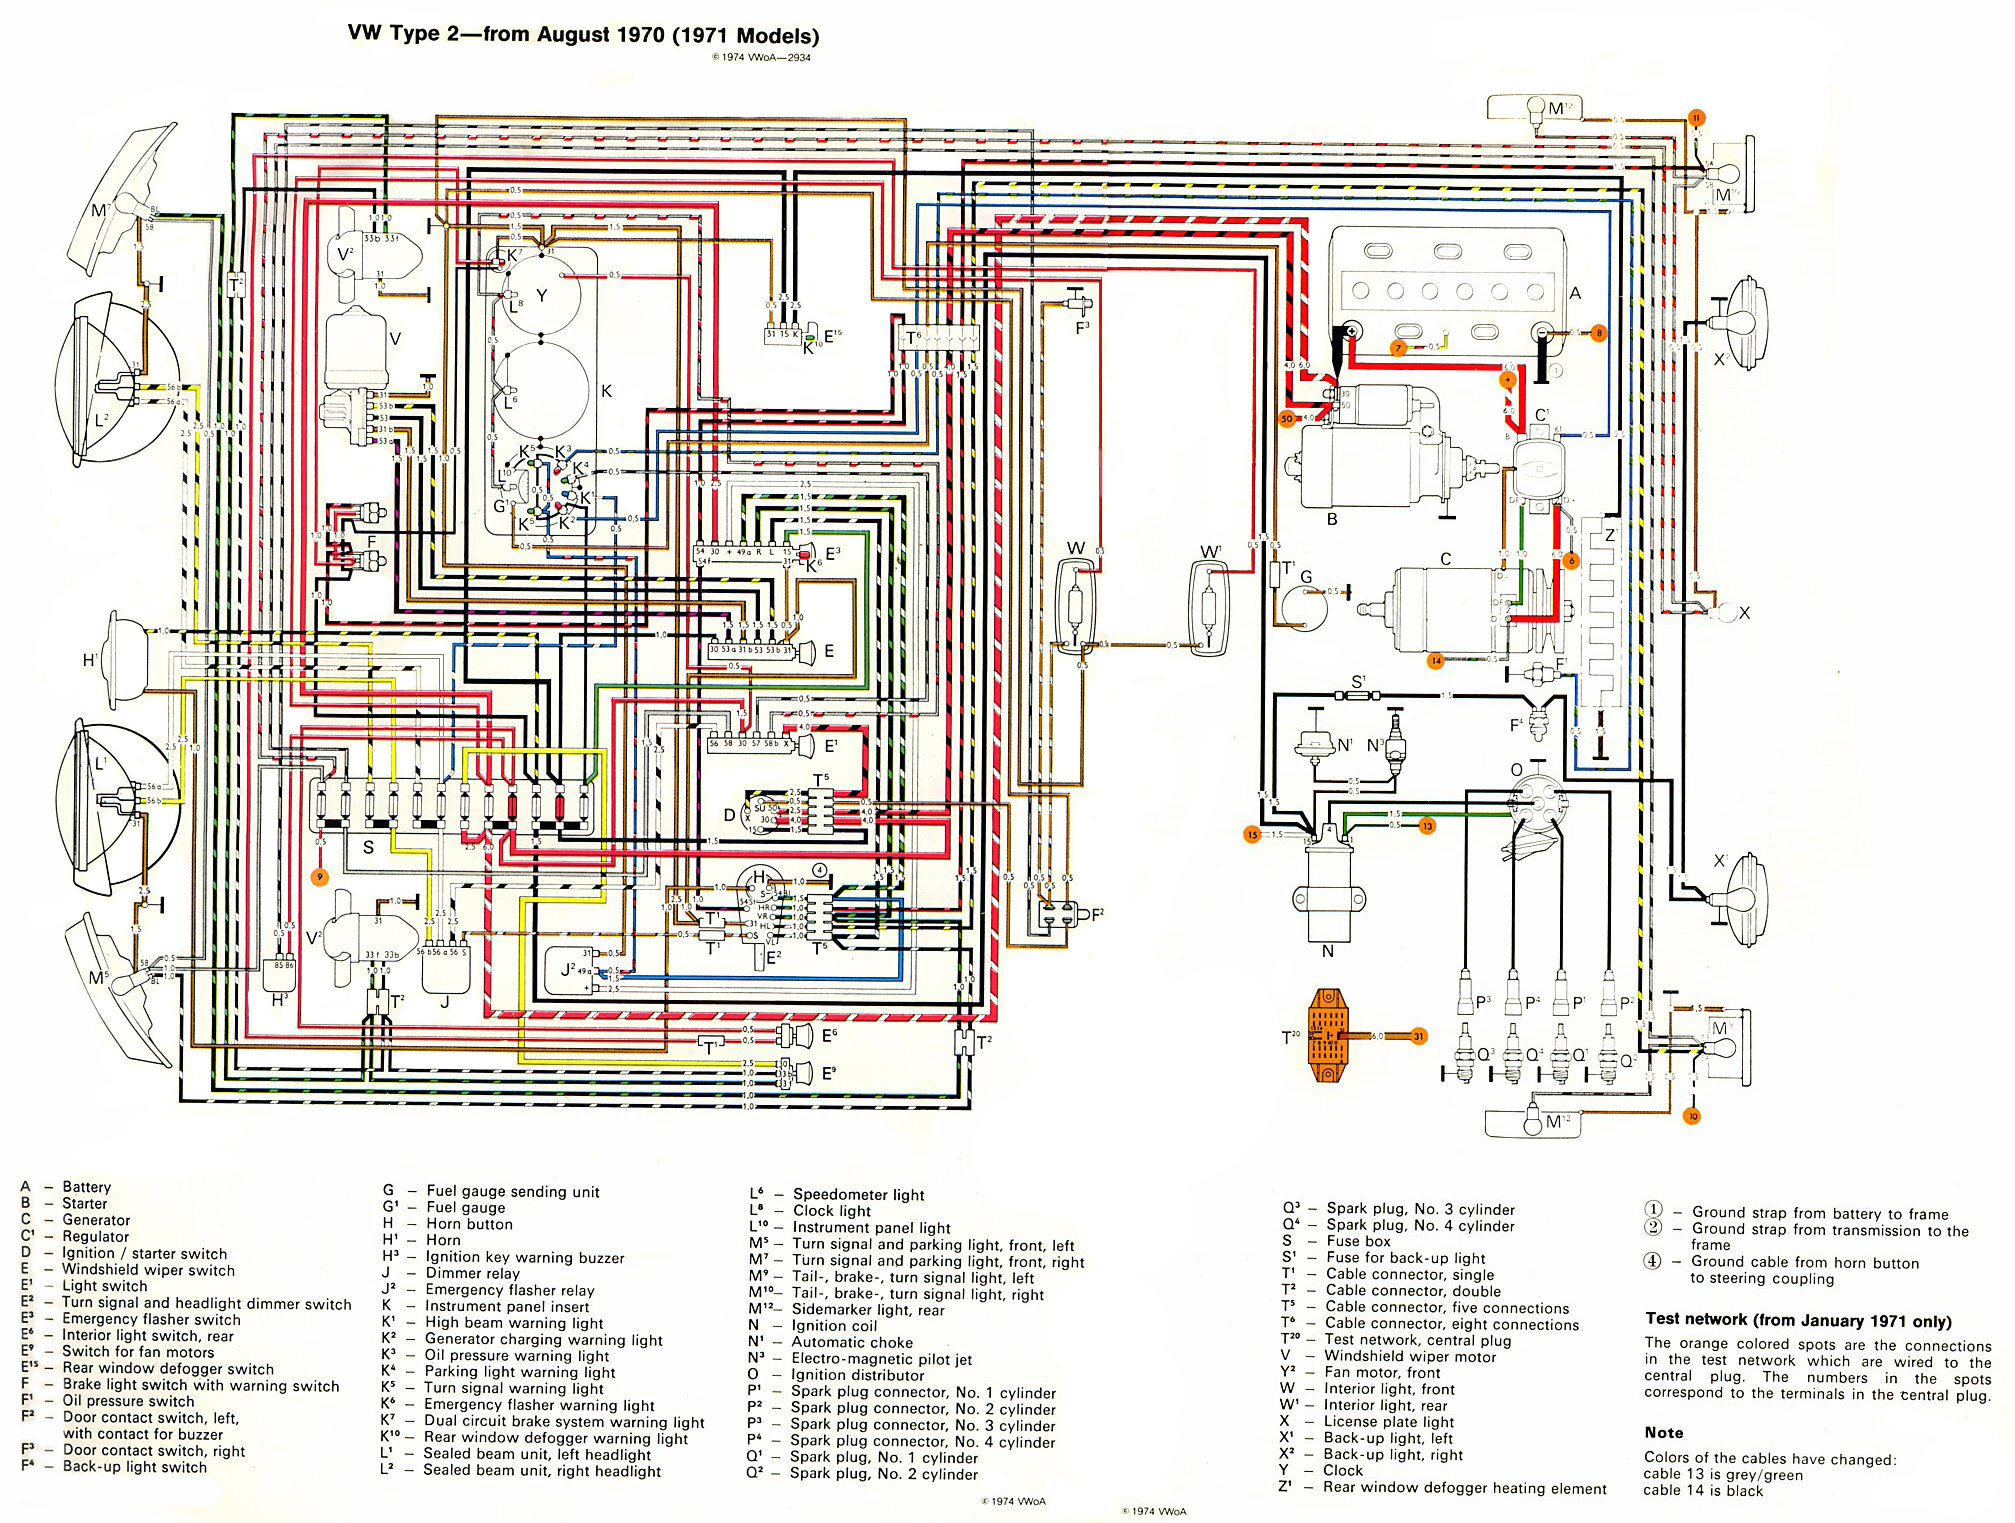 thesamba com type 2 wiring diagrams rh thesamba com Basic Electrical Schematic Diagrams Schematic Circuit Diagram